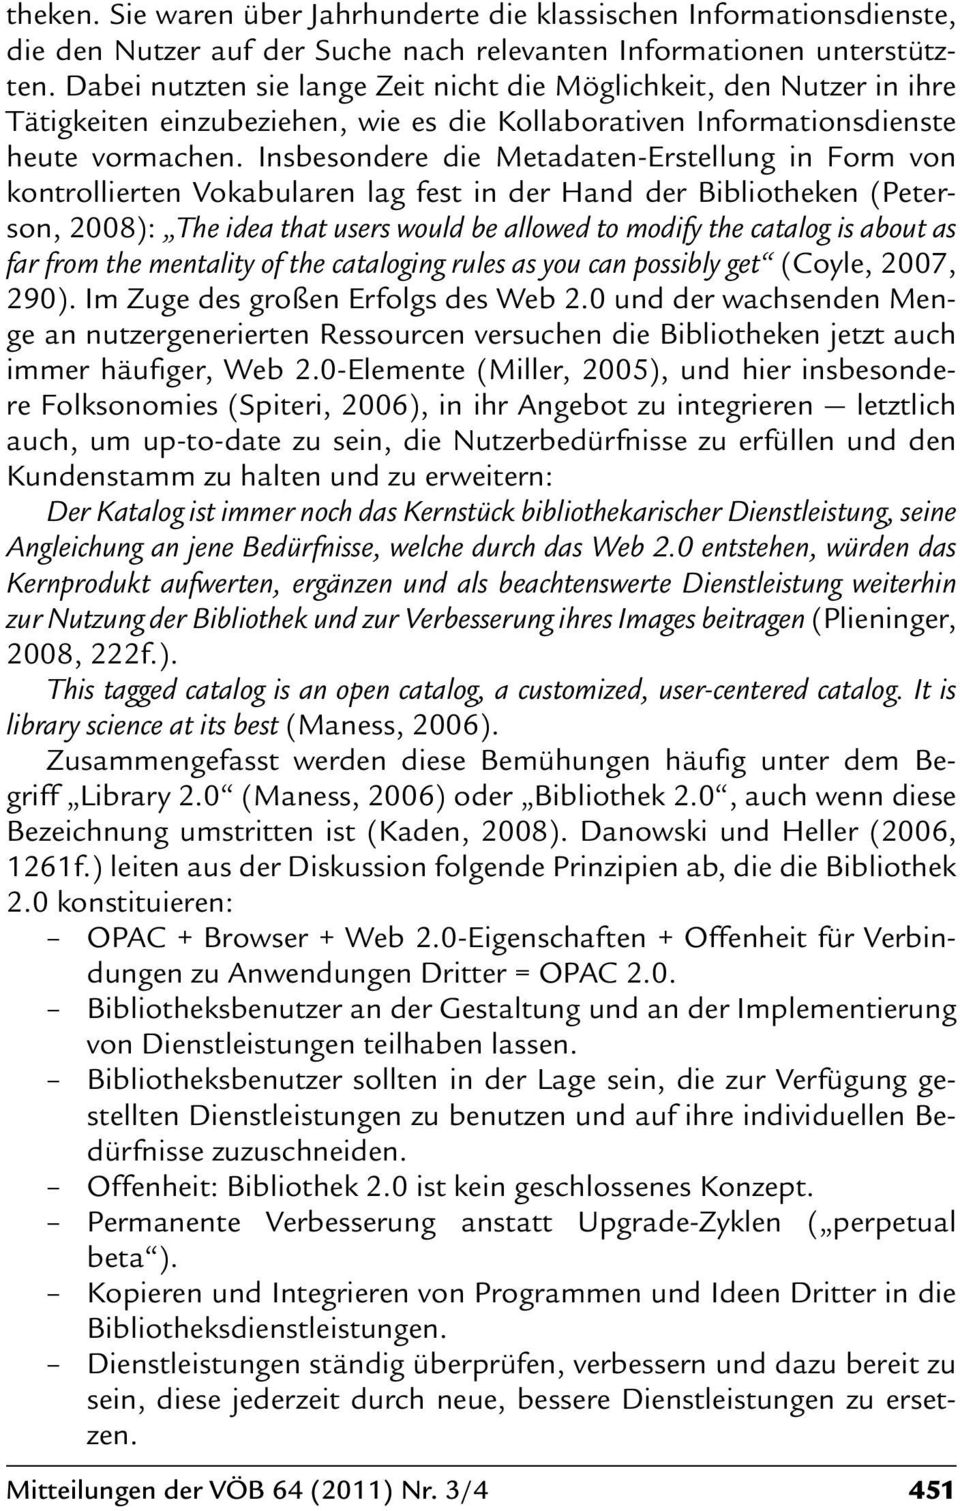 Insbesondere die Metadaten-Erstellung in Form von kontrollierten Vokabularen lag fest in der Hand der Bibliotheken (Peterson, 2008): The idea that users would be allowed to modify the catalog is